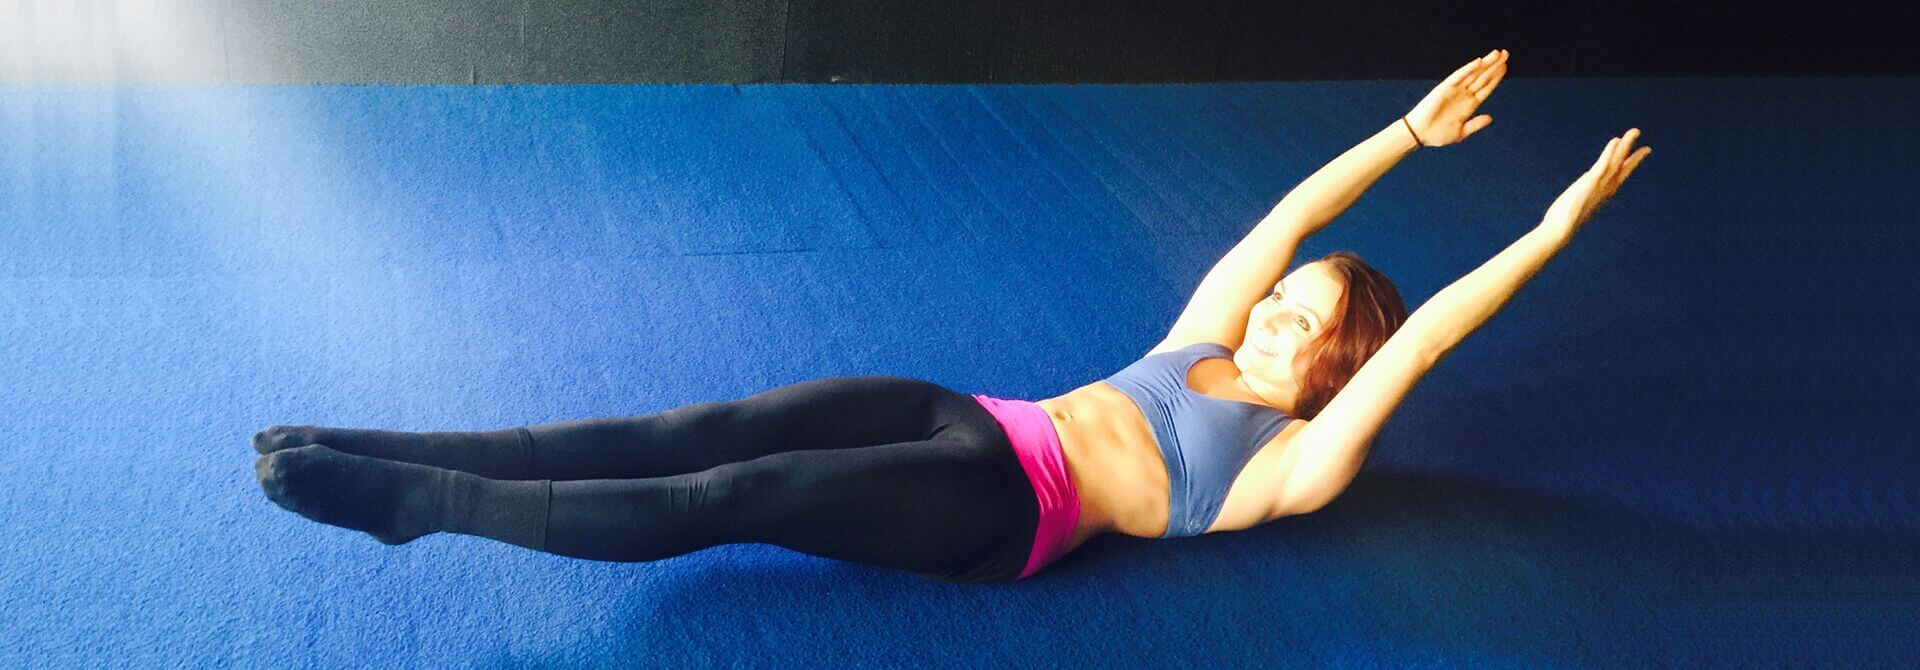 GymnasticBodies female athlete demonstrates how to build your 6-pack abs with the hollow body hold.